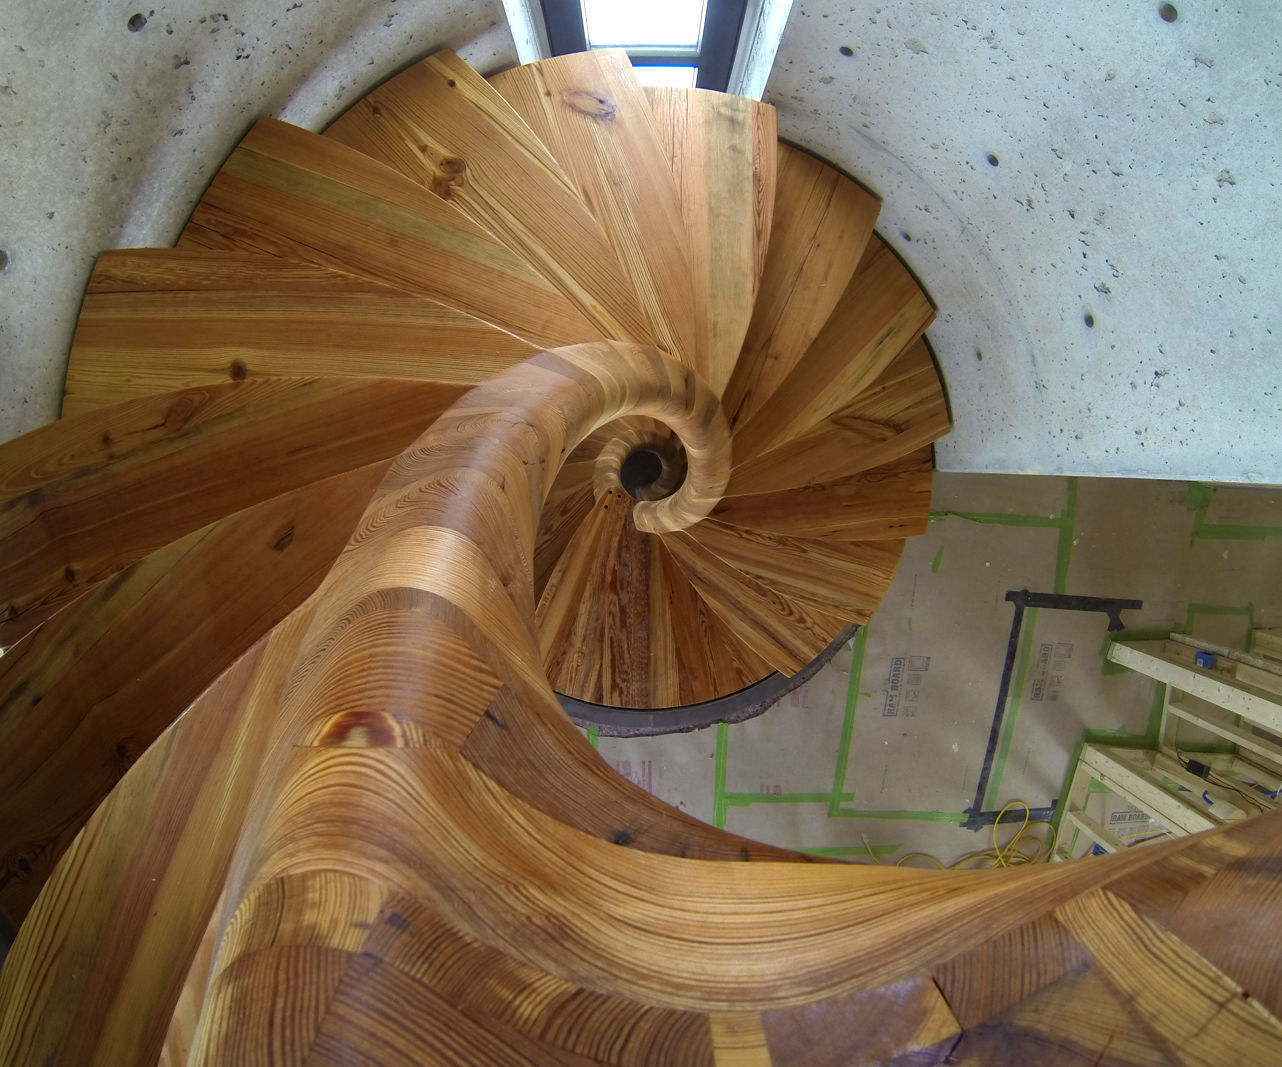 Spiral Staircase With a TON of Curves